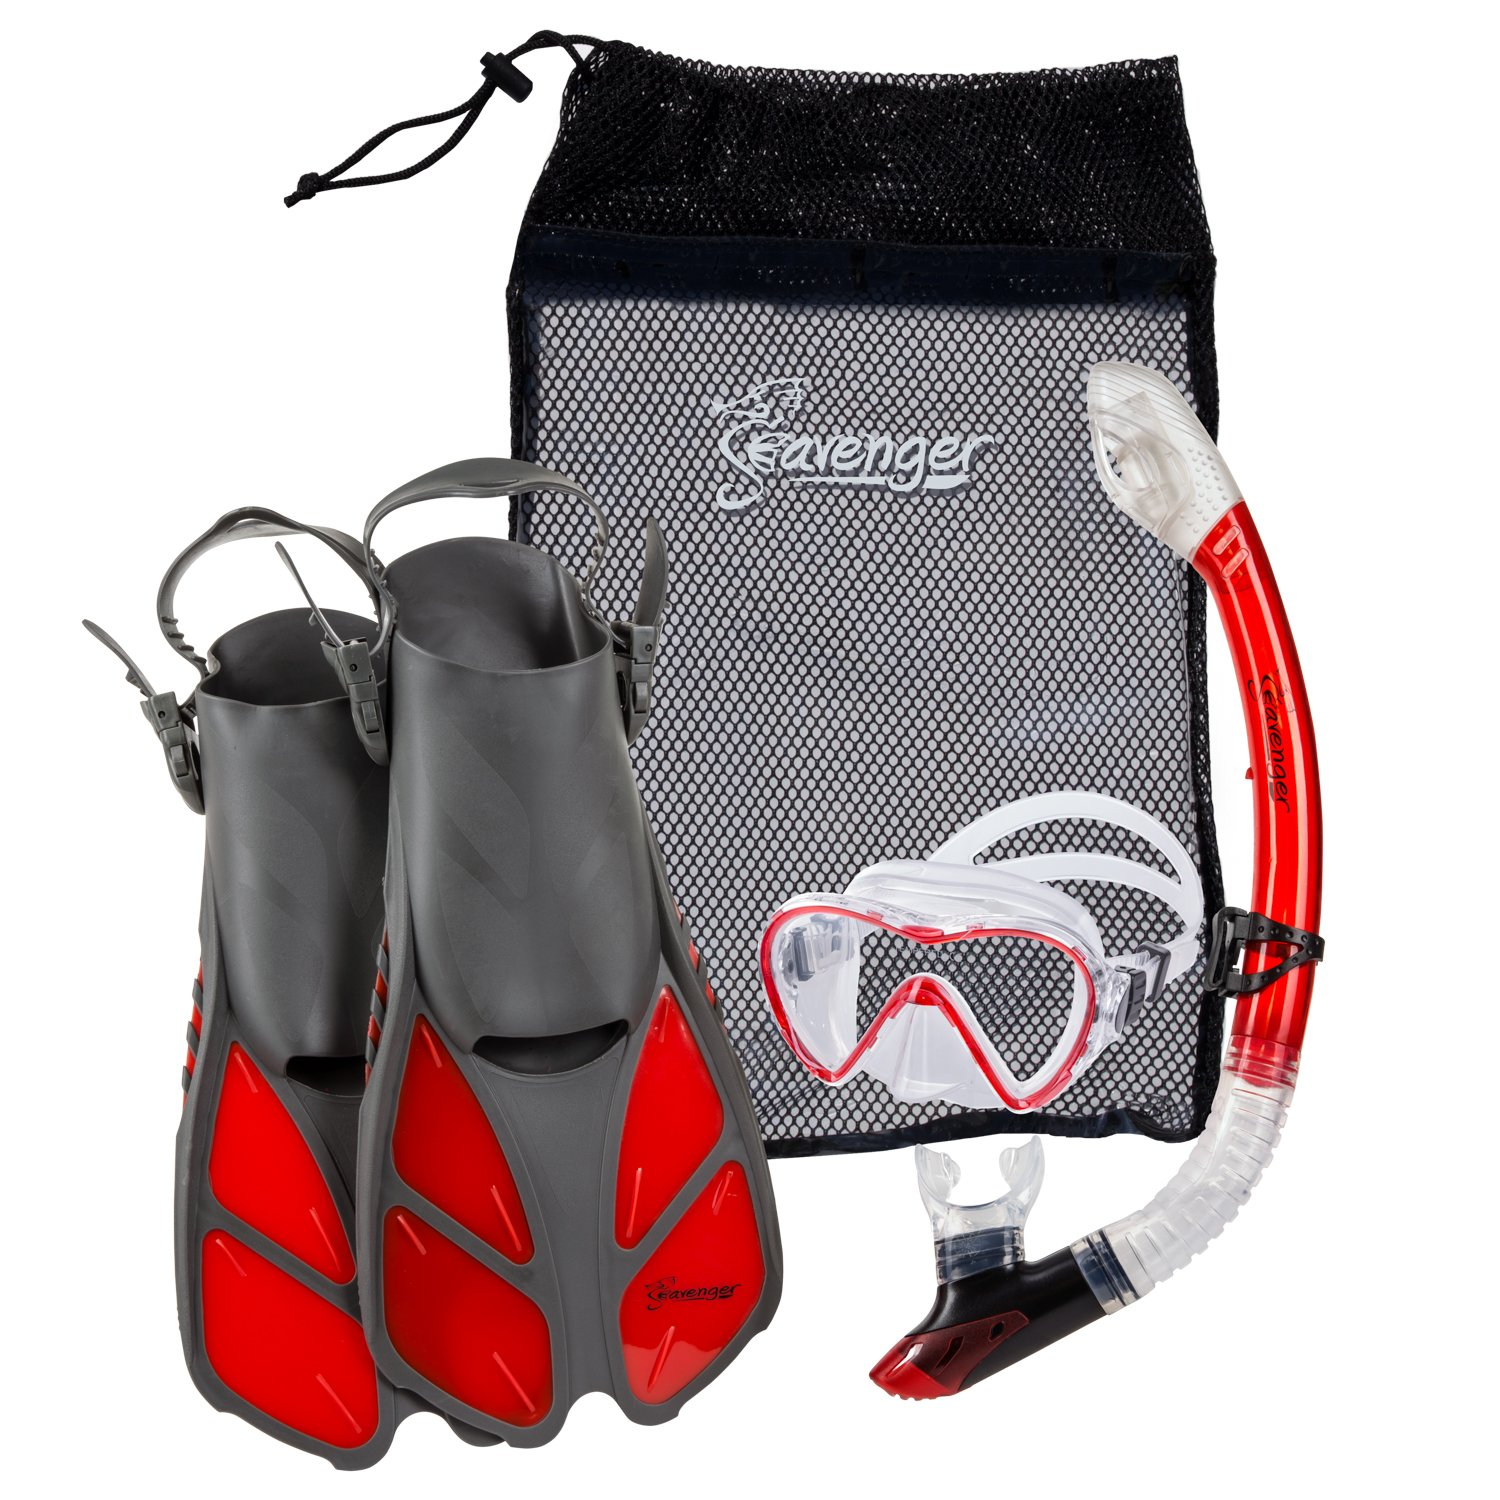 Seavenger Diving Dry Top Snorkel Set with Trek Fin, Single Lens Mask and Gear Bag, L/XL - Size 9 to 13, Gray/Clear Red by Seavenger